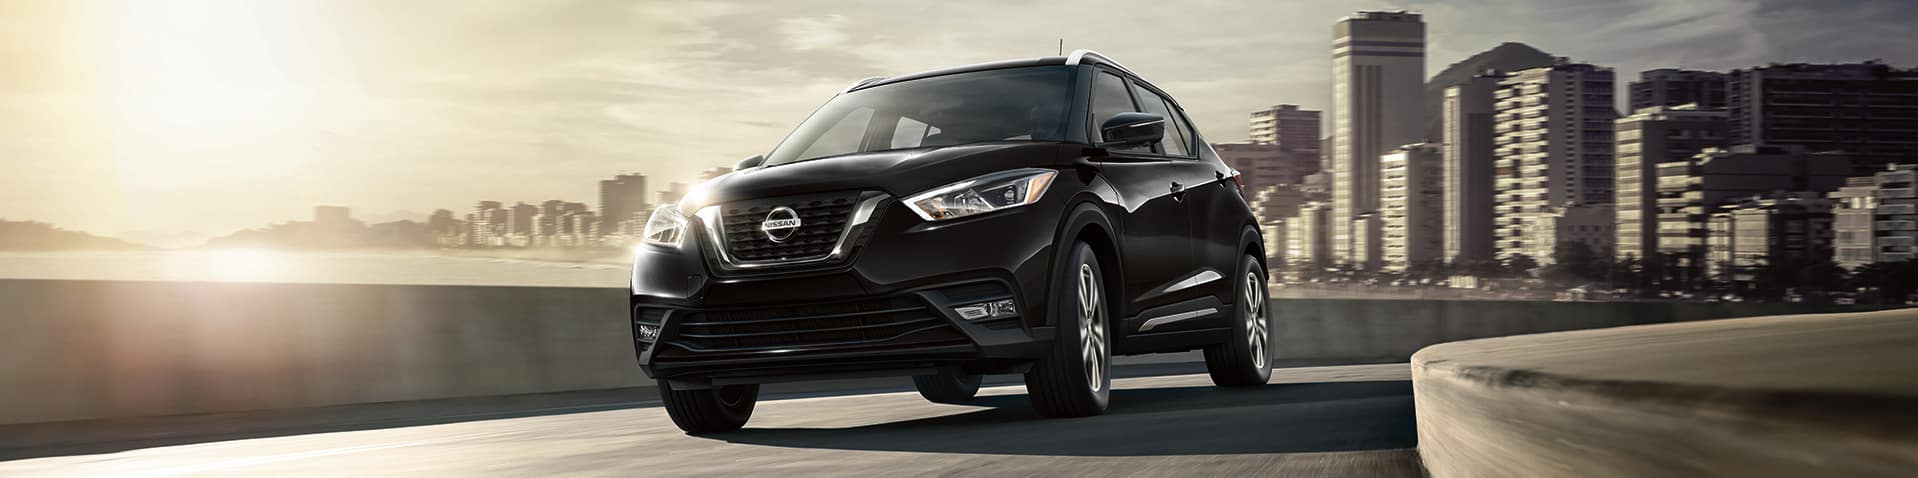 Nissan Boston is a Car Dealership near Boston MD | Black MY19 Nissan Kicks driving on highway with city in background